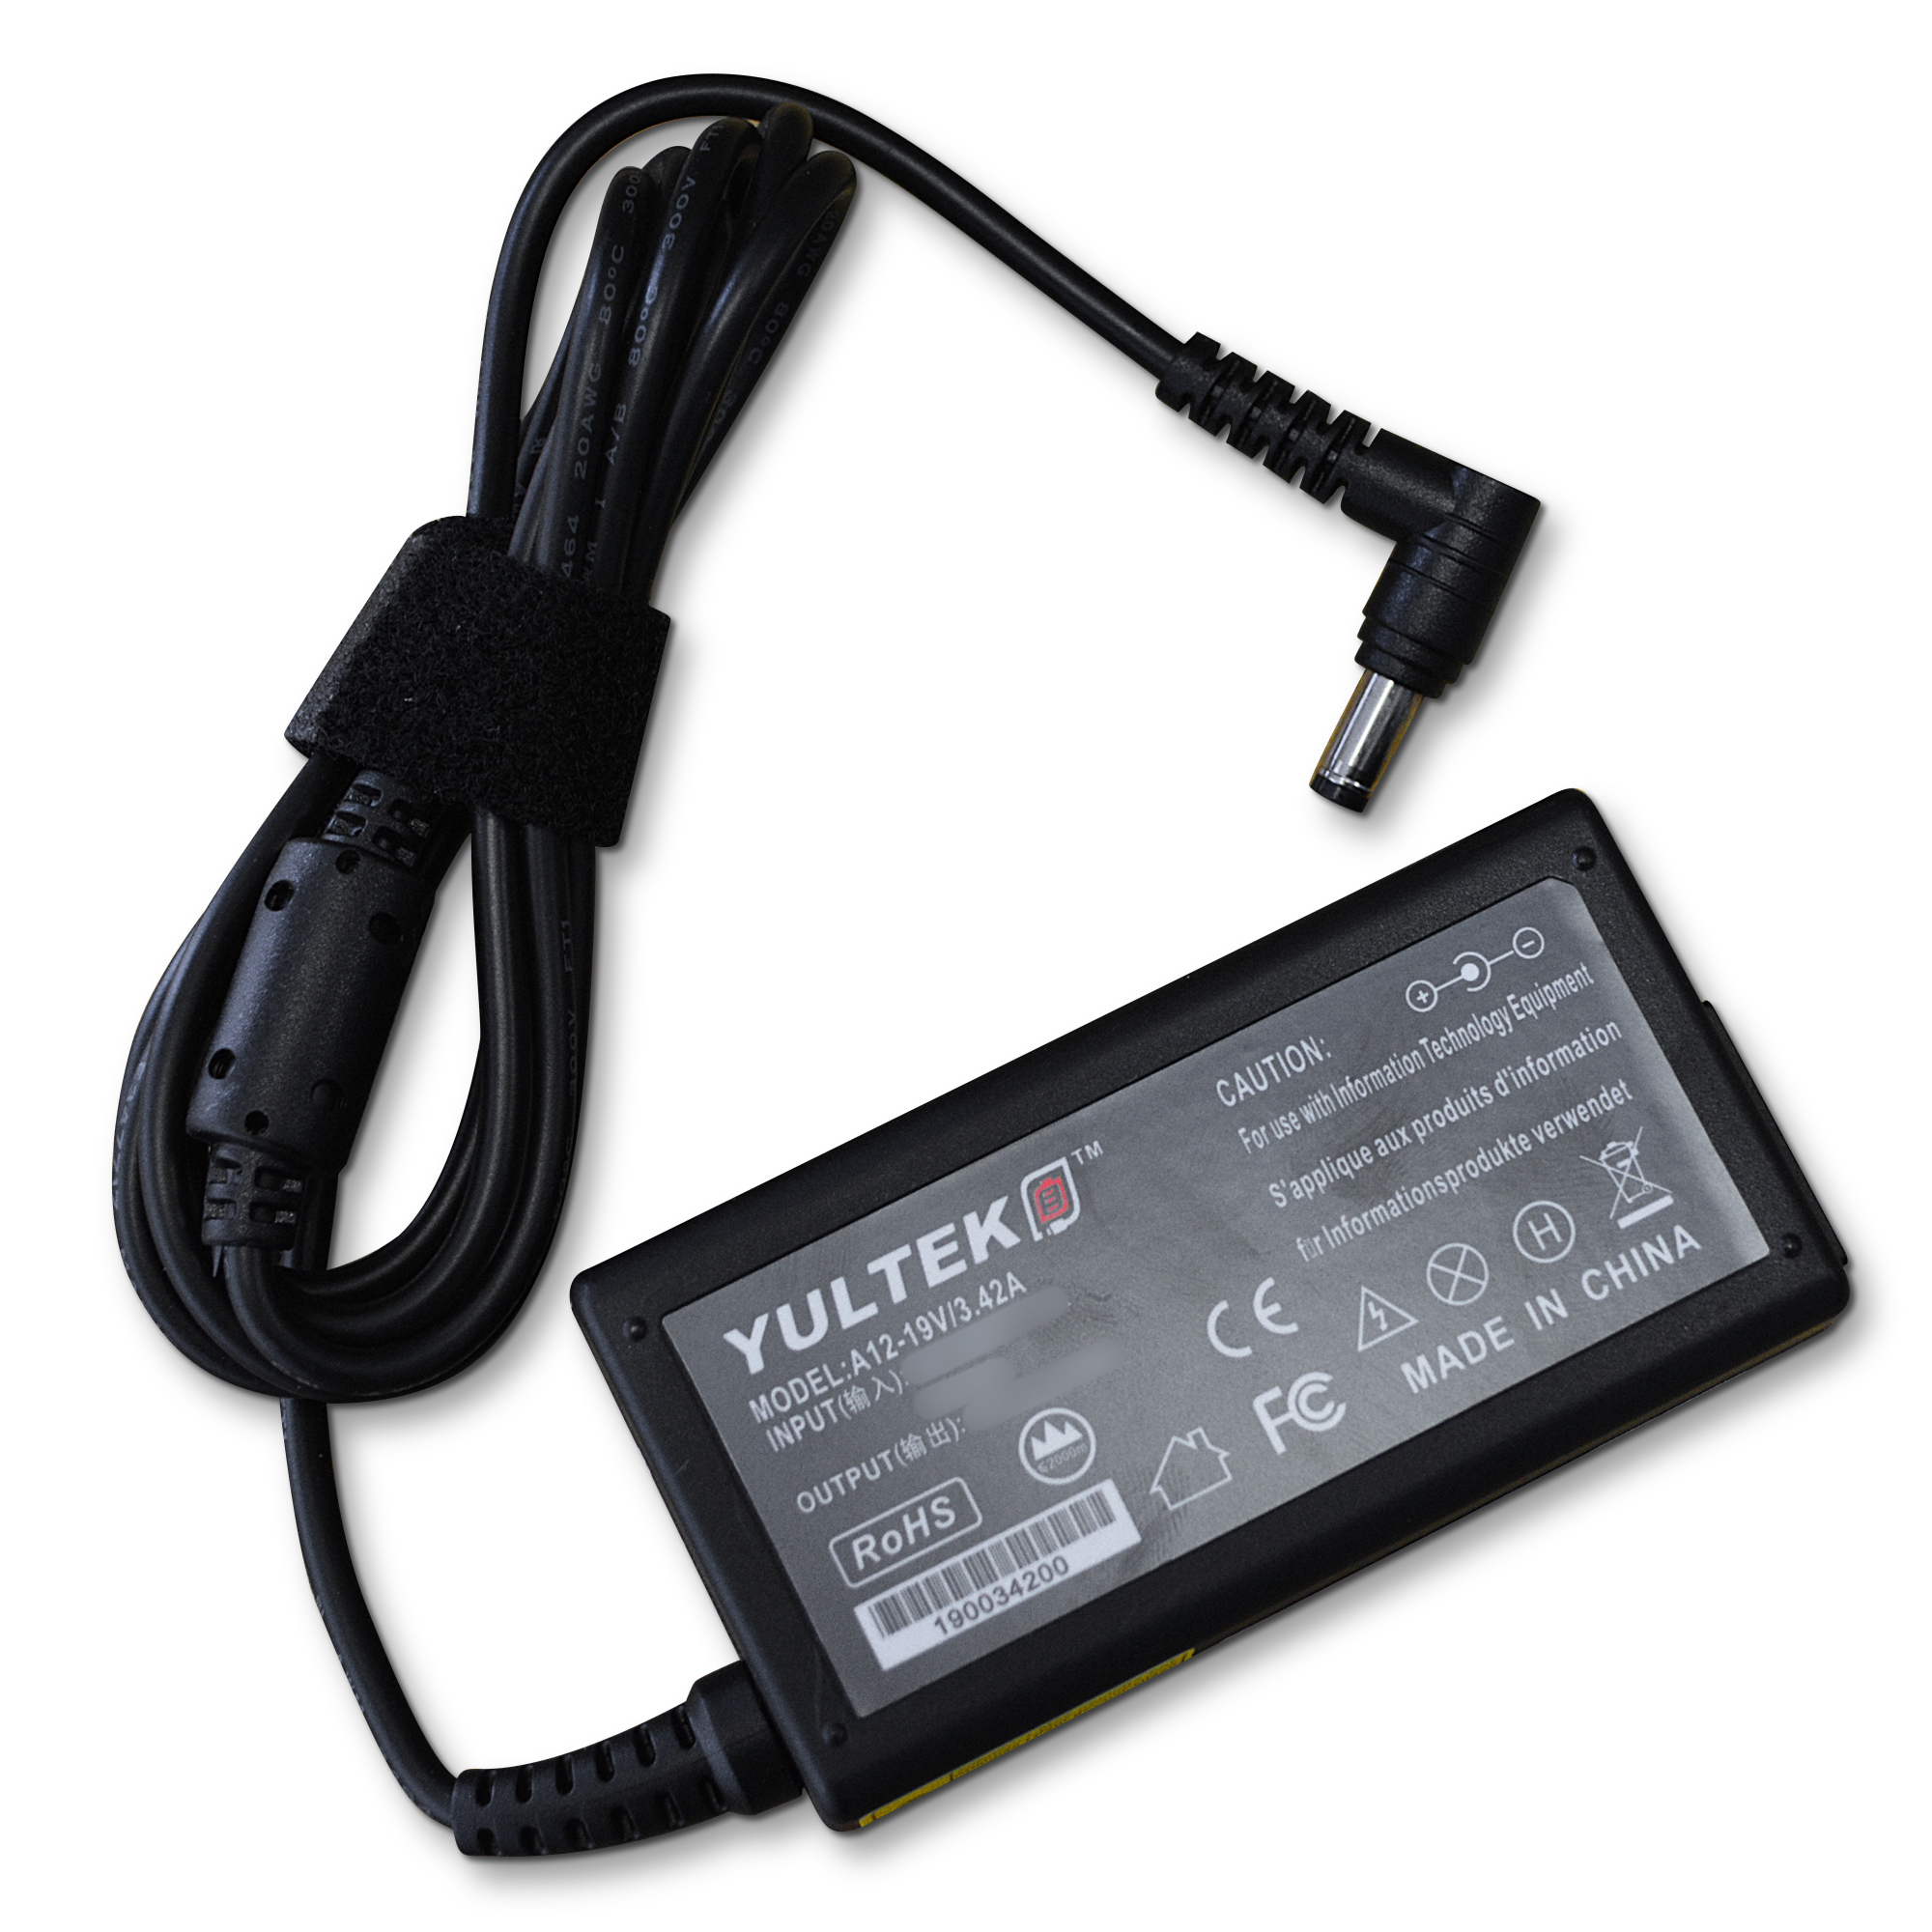 Fujitsu-Siemens Part Number WTS:25.10180.001 Laptop Charger